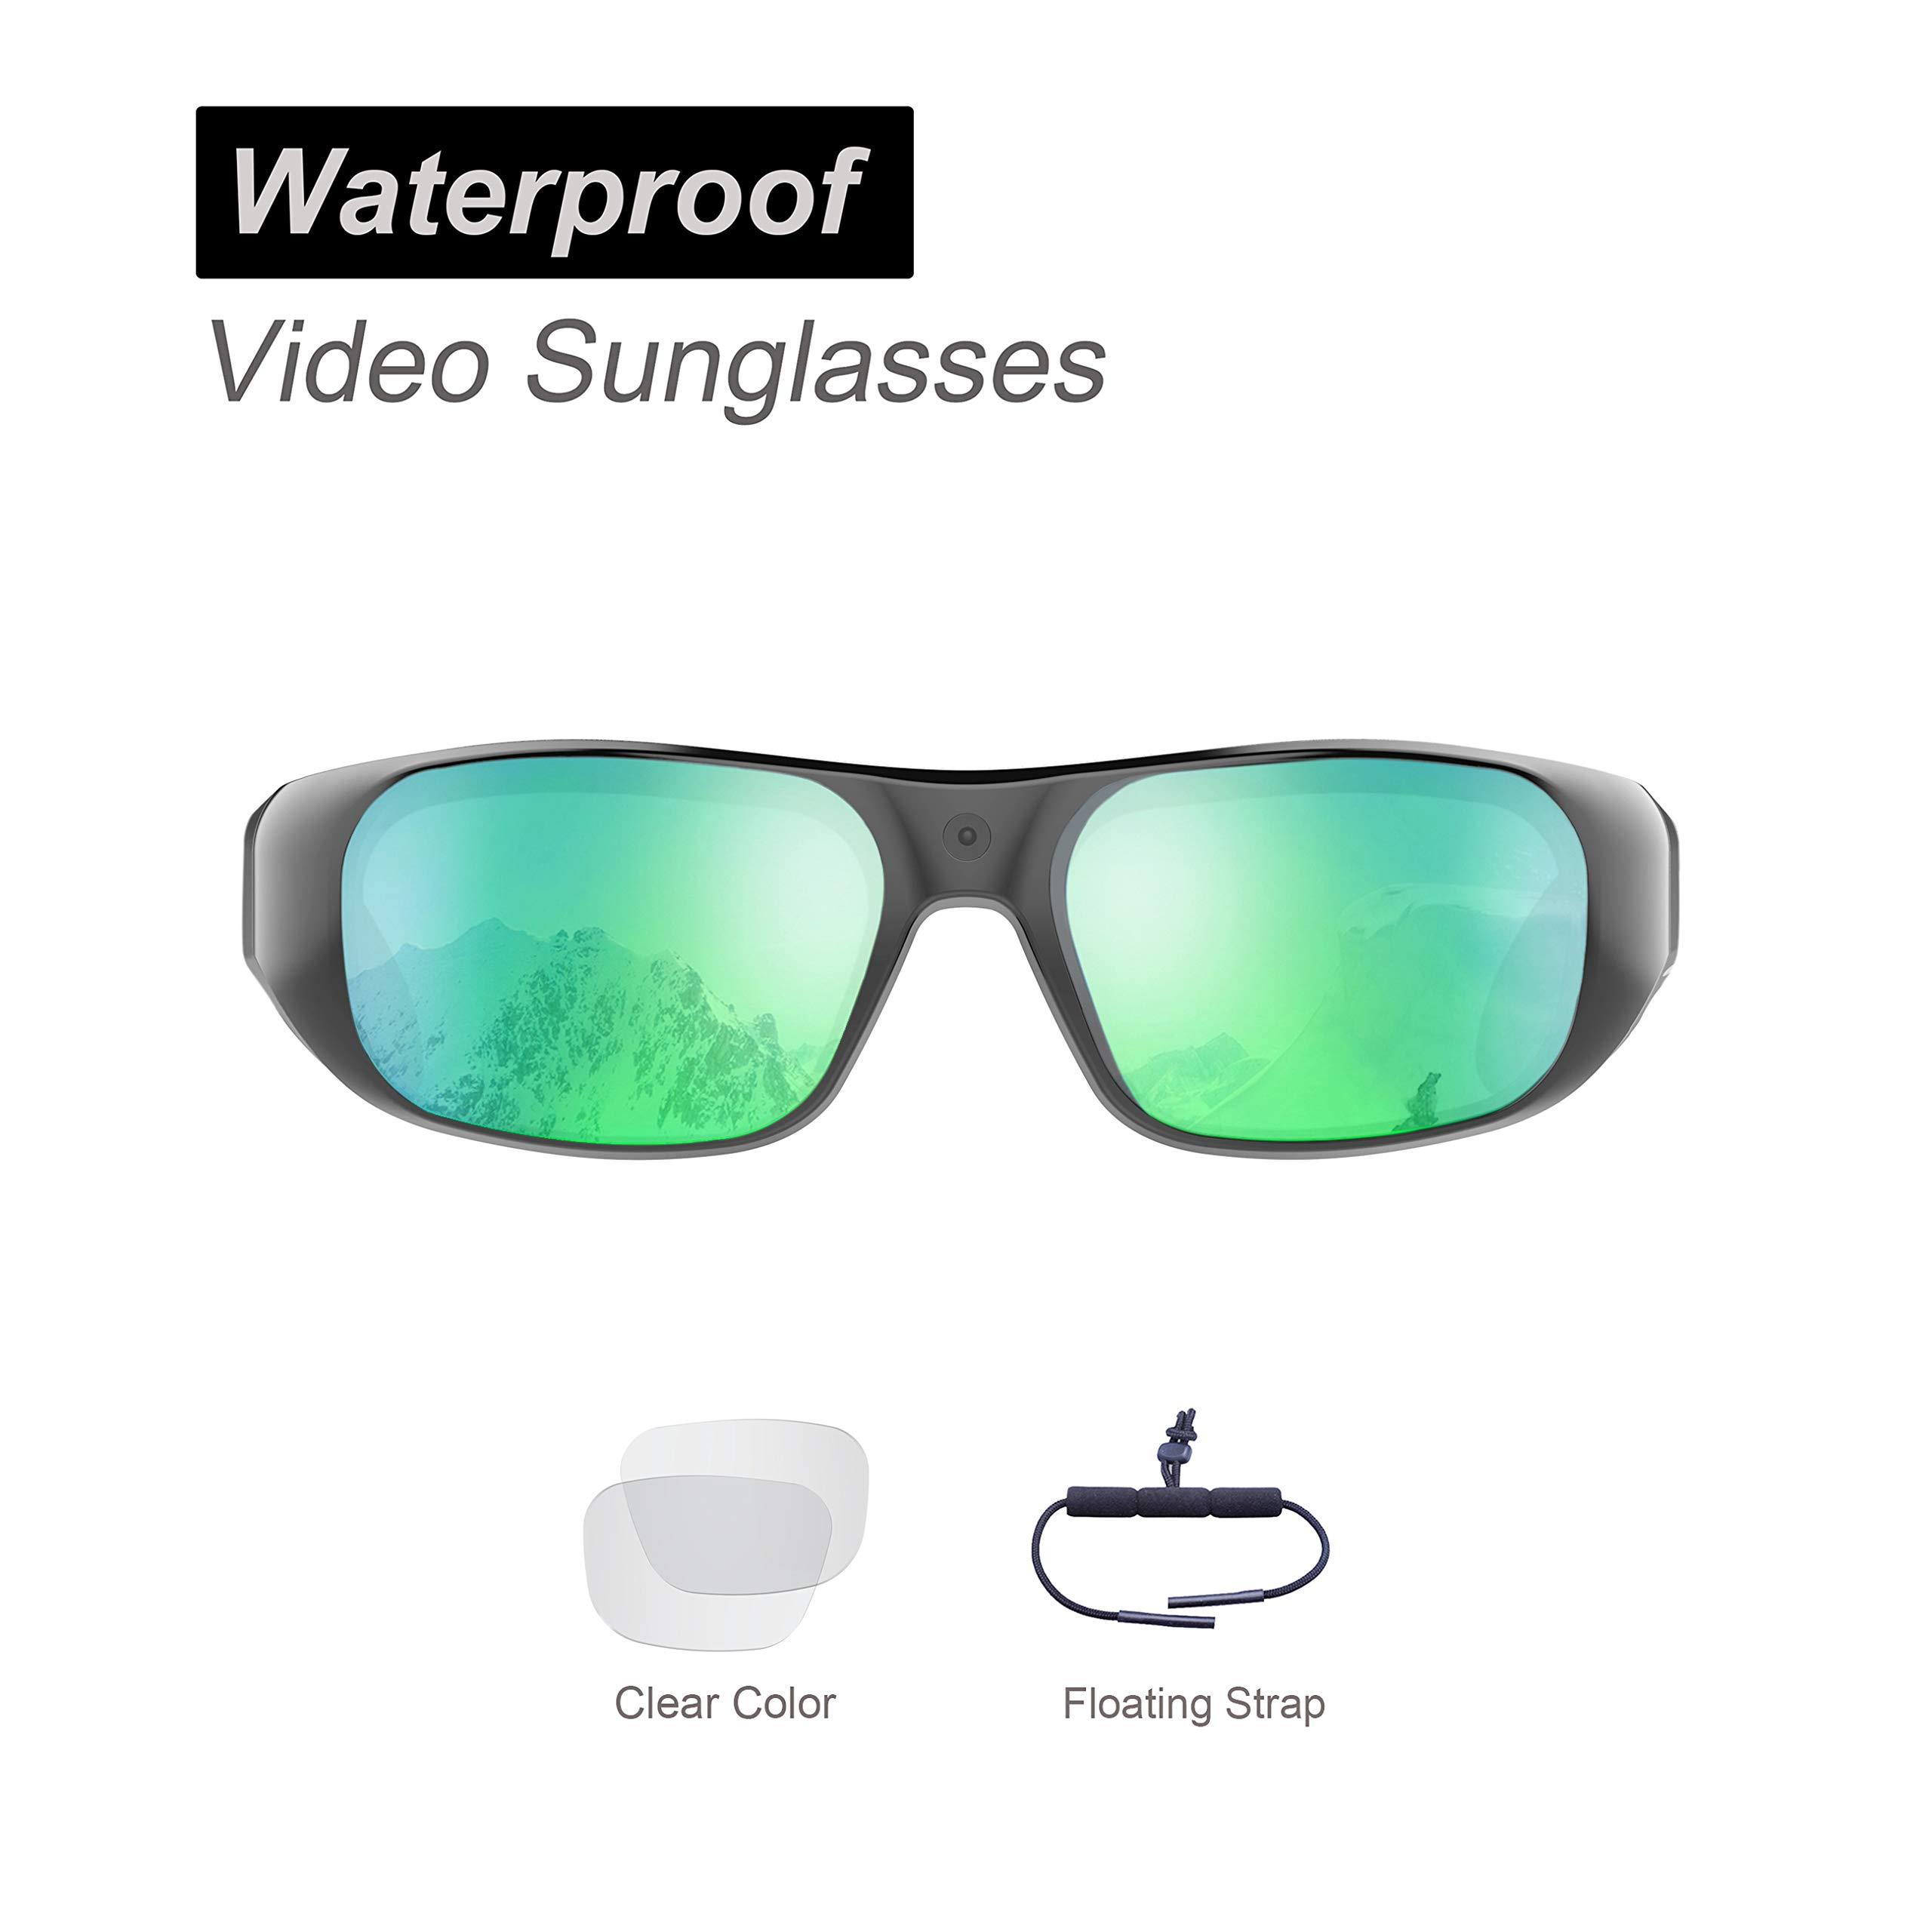 Waterproof Video Sunglasses,32GB Ultra 1080P Full HD Outdoor Sports Action Camera and 2 Sets Polarized UV400 Protection Safety Lenses,Unisex Sport Design by OhO sunshine